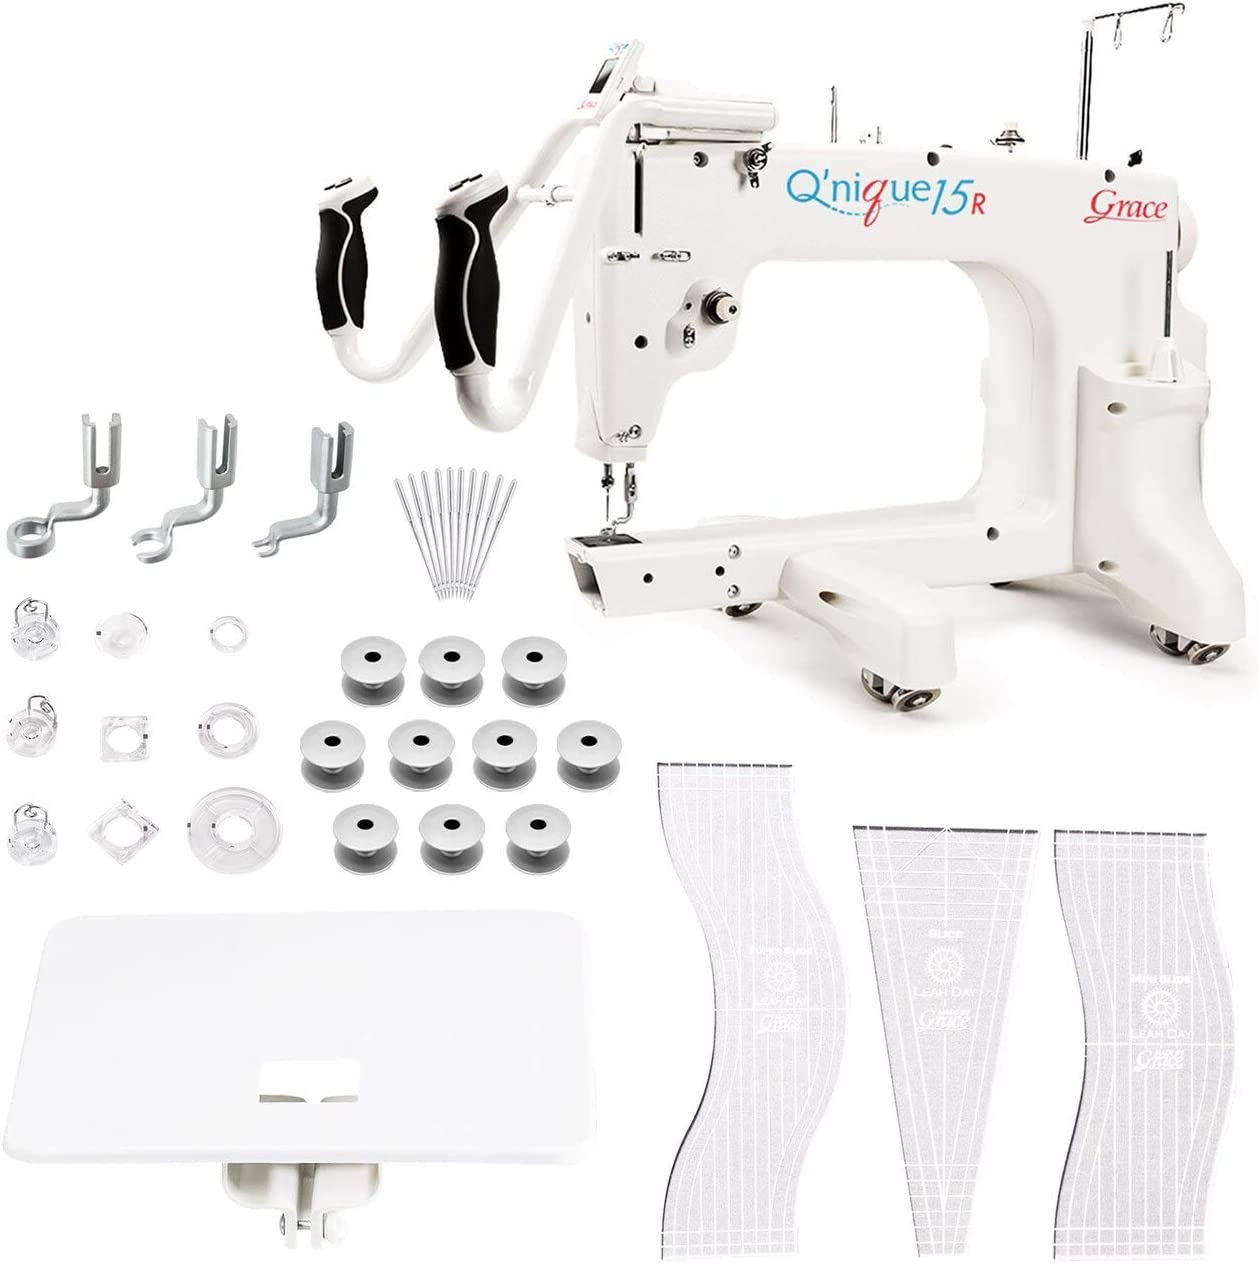 Online limited product Grace Q'nique 15R Midarm Quality inspection Machine Bonuspack Quilting with